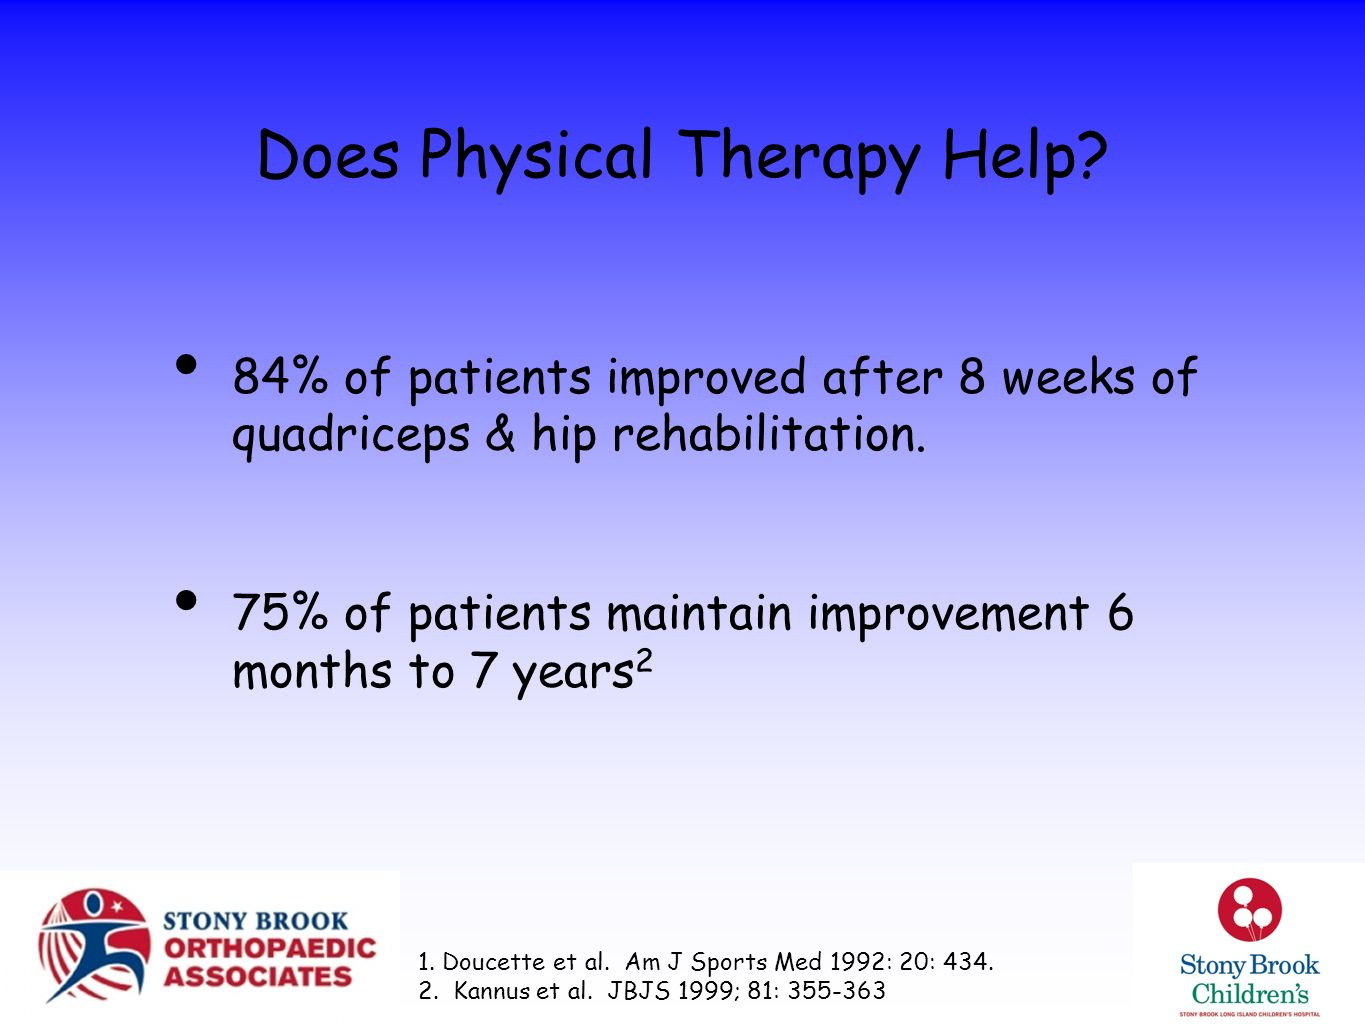 Does Physical Therapy Help